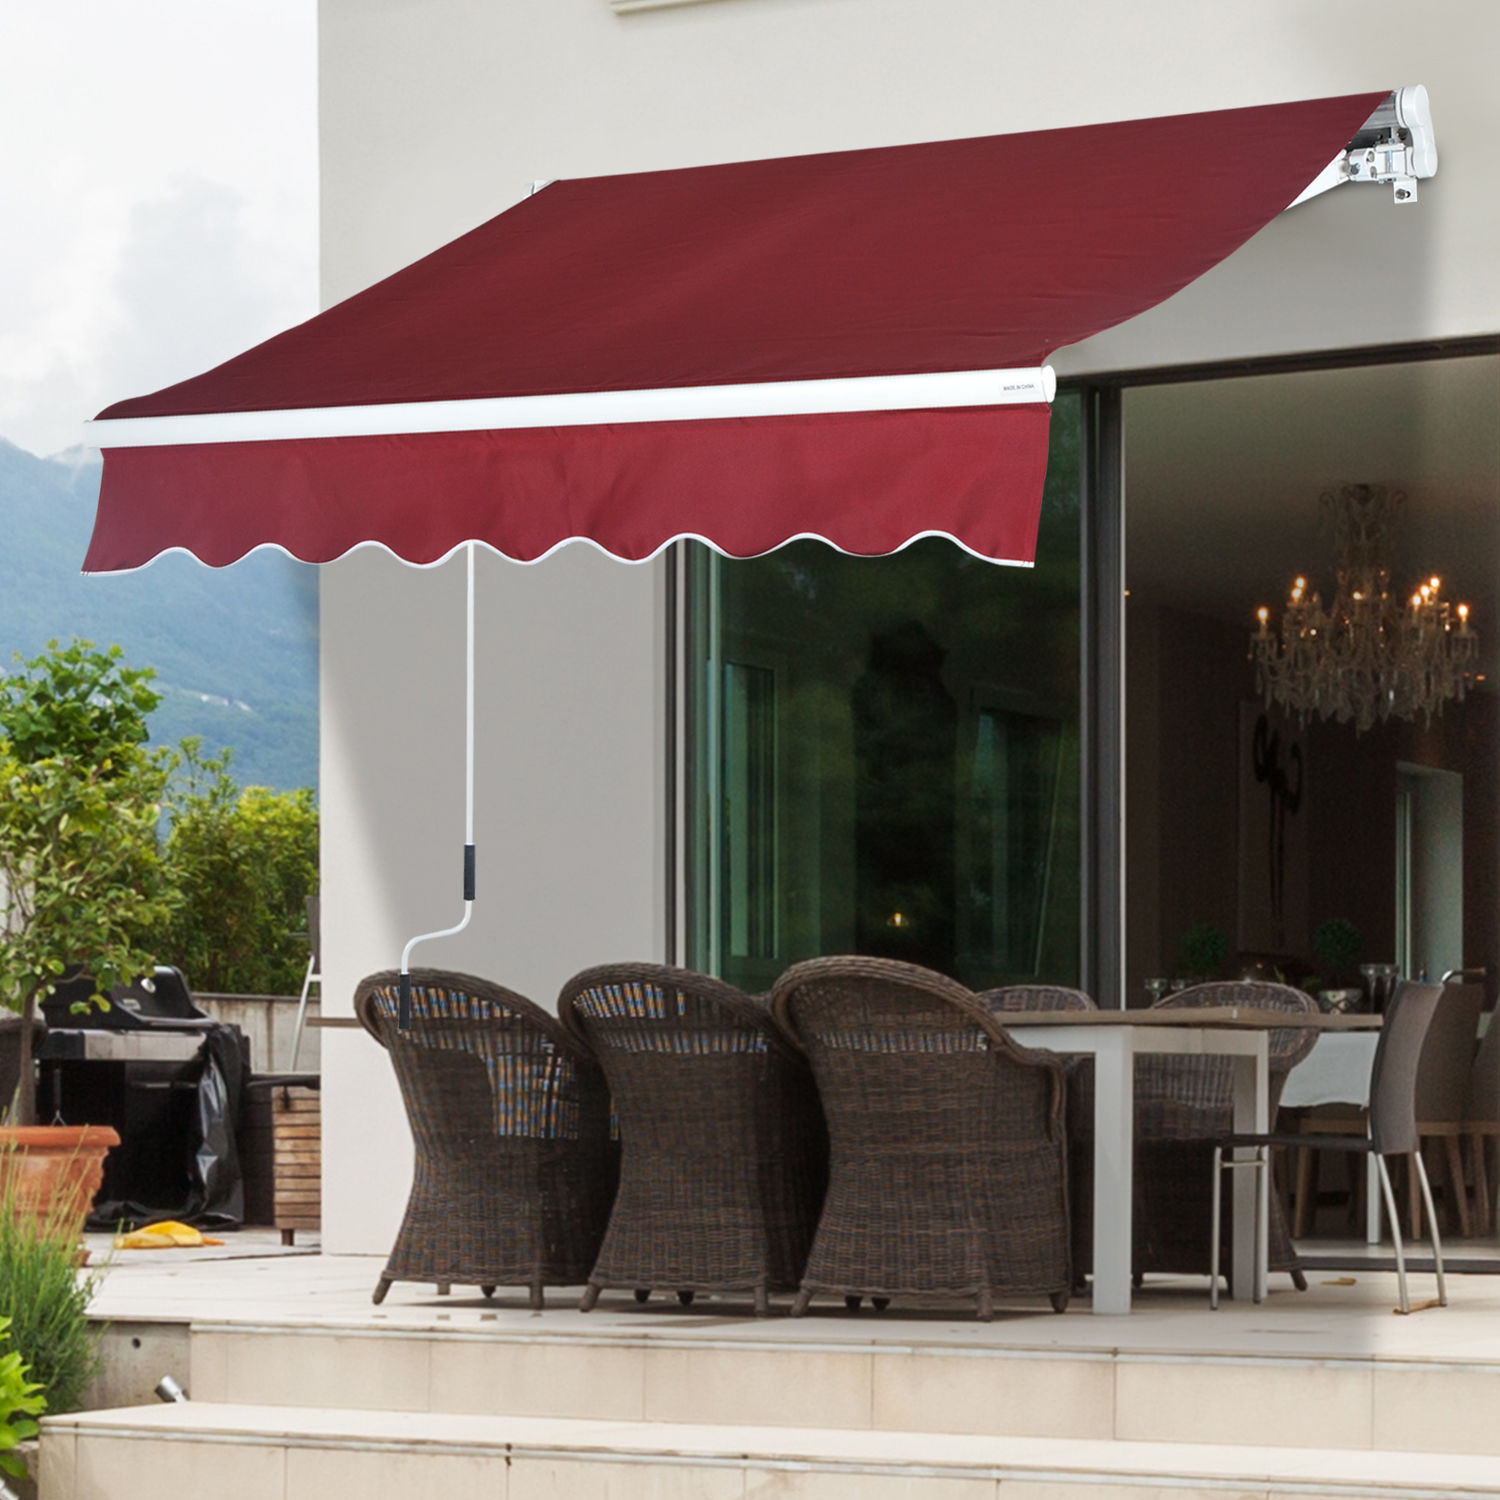 Outdoor 8'x7'/13'x8' Patio Awning Sun Shade Canopy Shelter